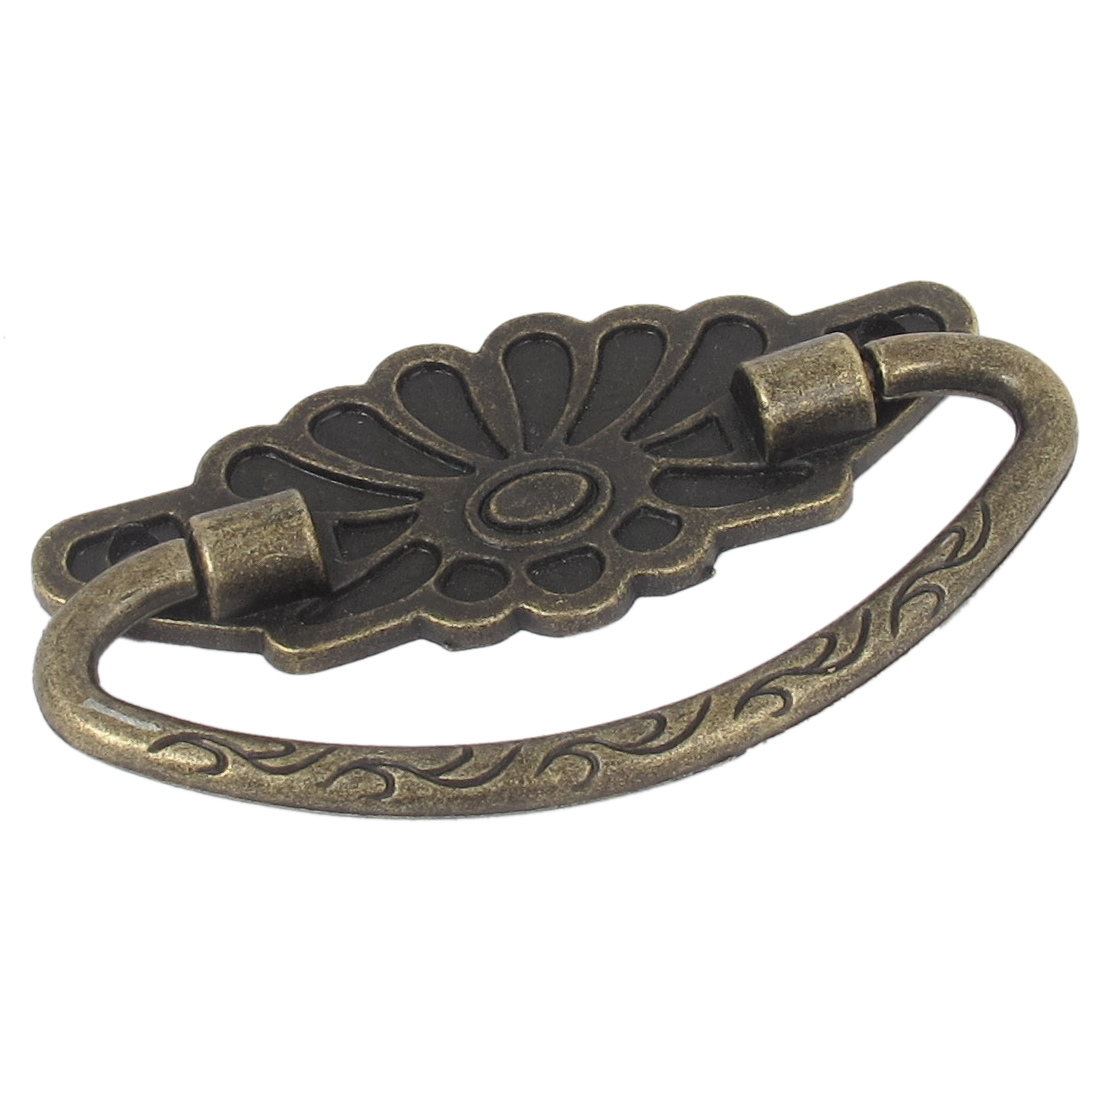 Vintage Style Arch Grip Ring Dresser Drawer Pull Handle Bronze Tone